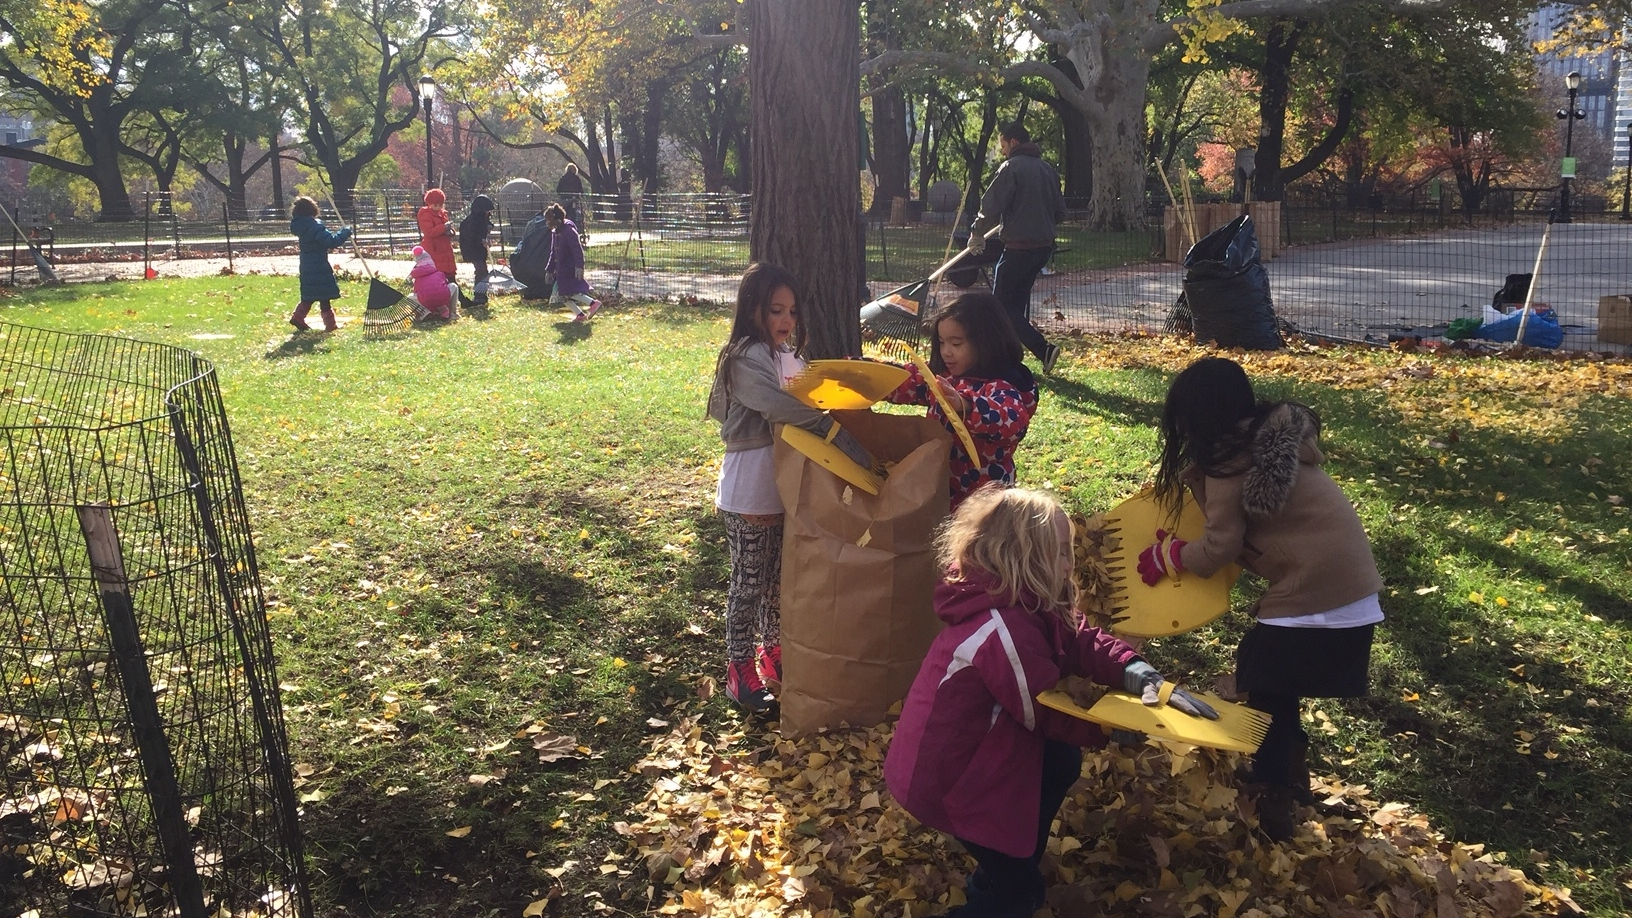 Volunteers from a local school group tending Monument Greene as part of a service learning day.